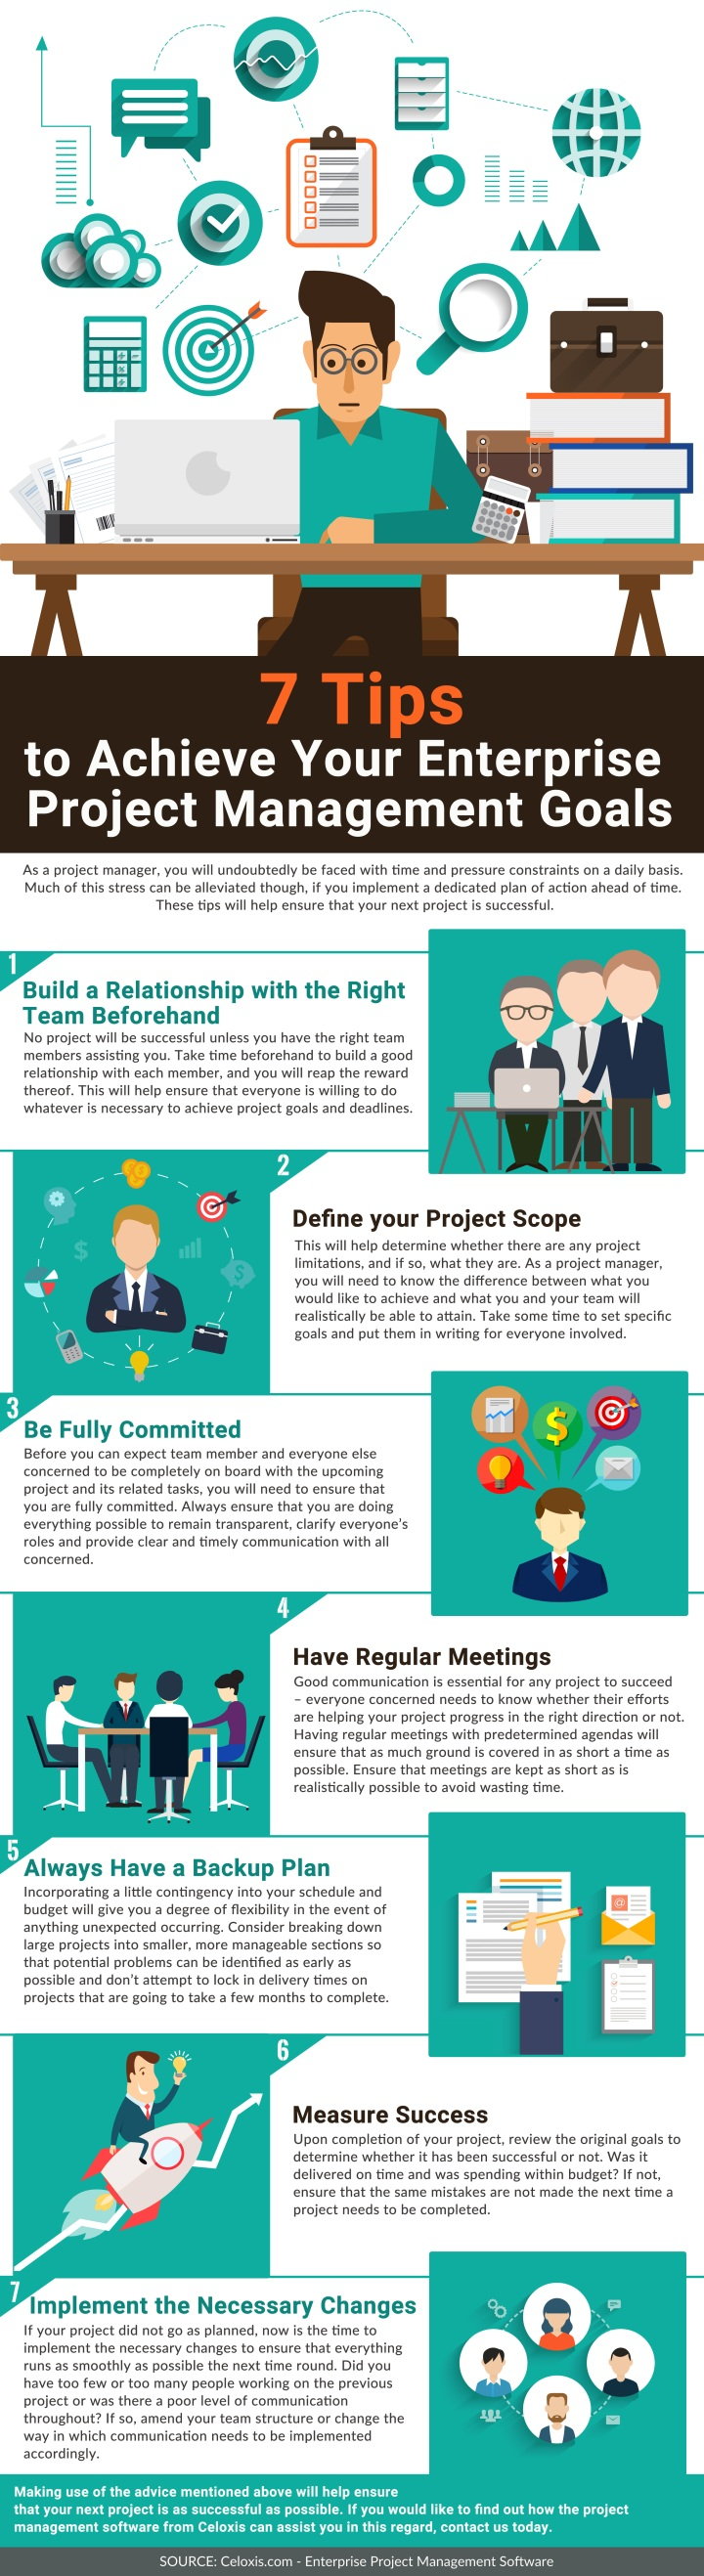 Infographic: 7 tips to achieve your enterprise project management goals